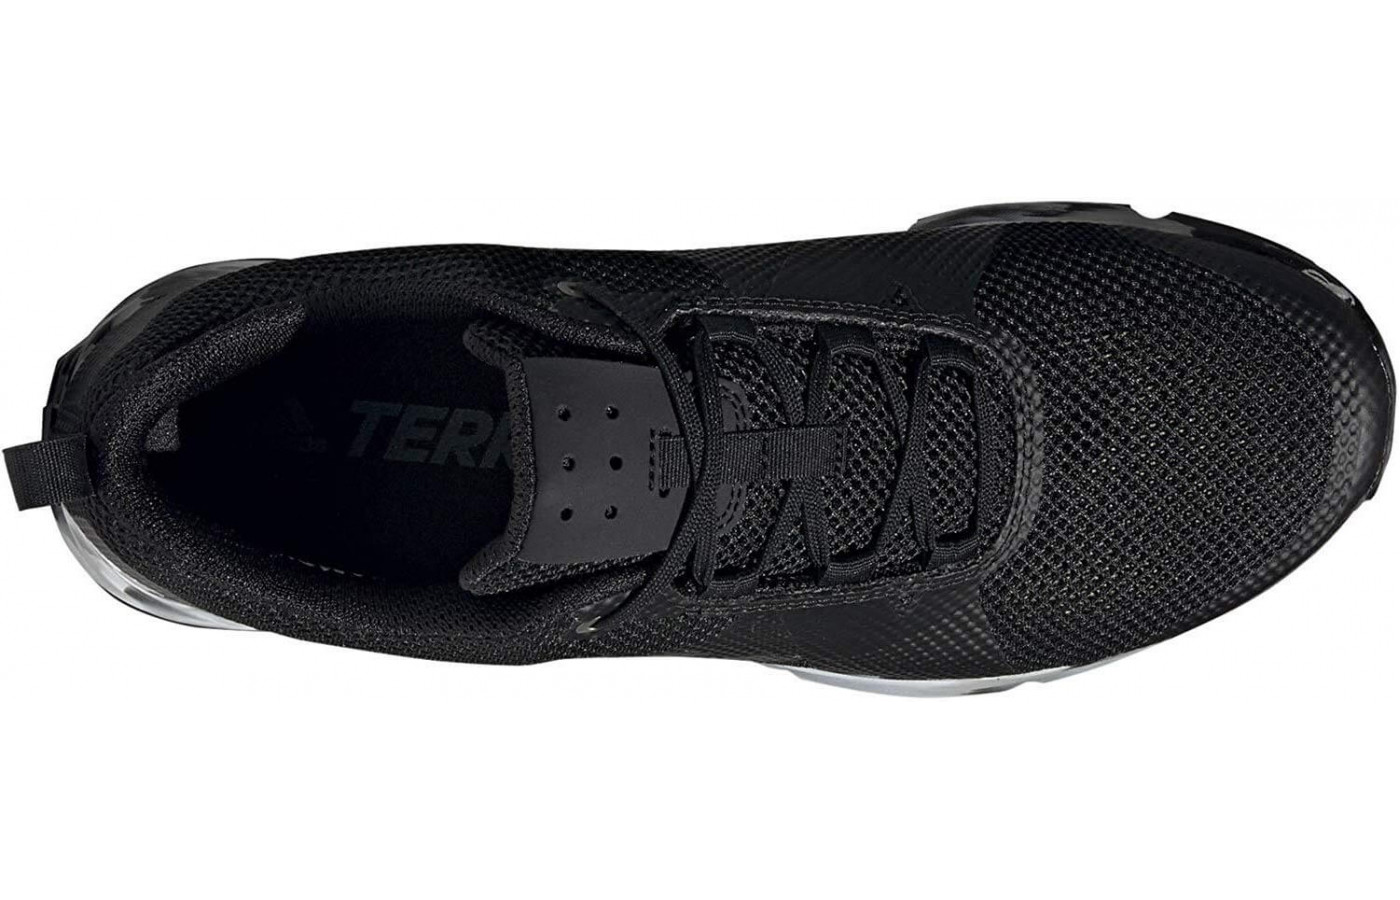 The Terrex Two's upper is made from mesh with TPU overlays.